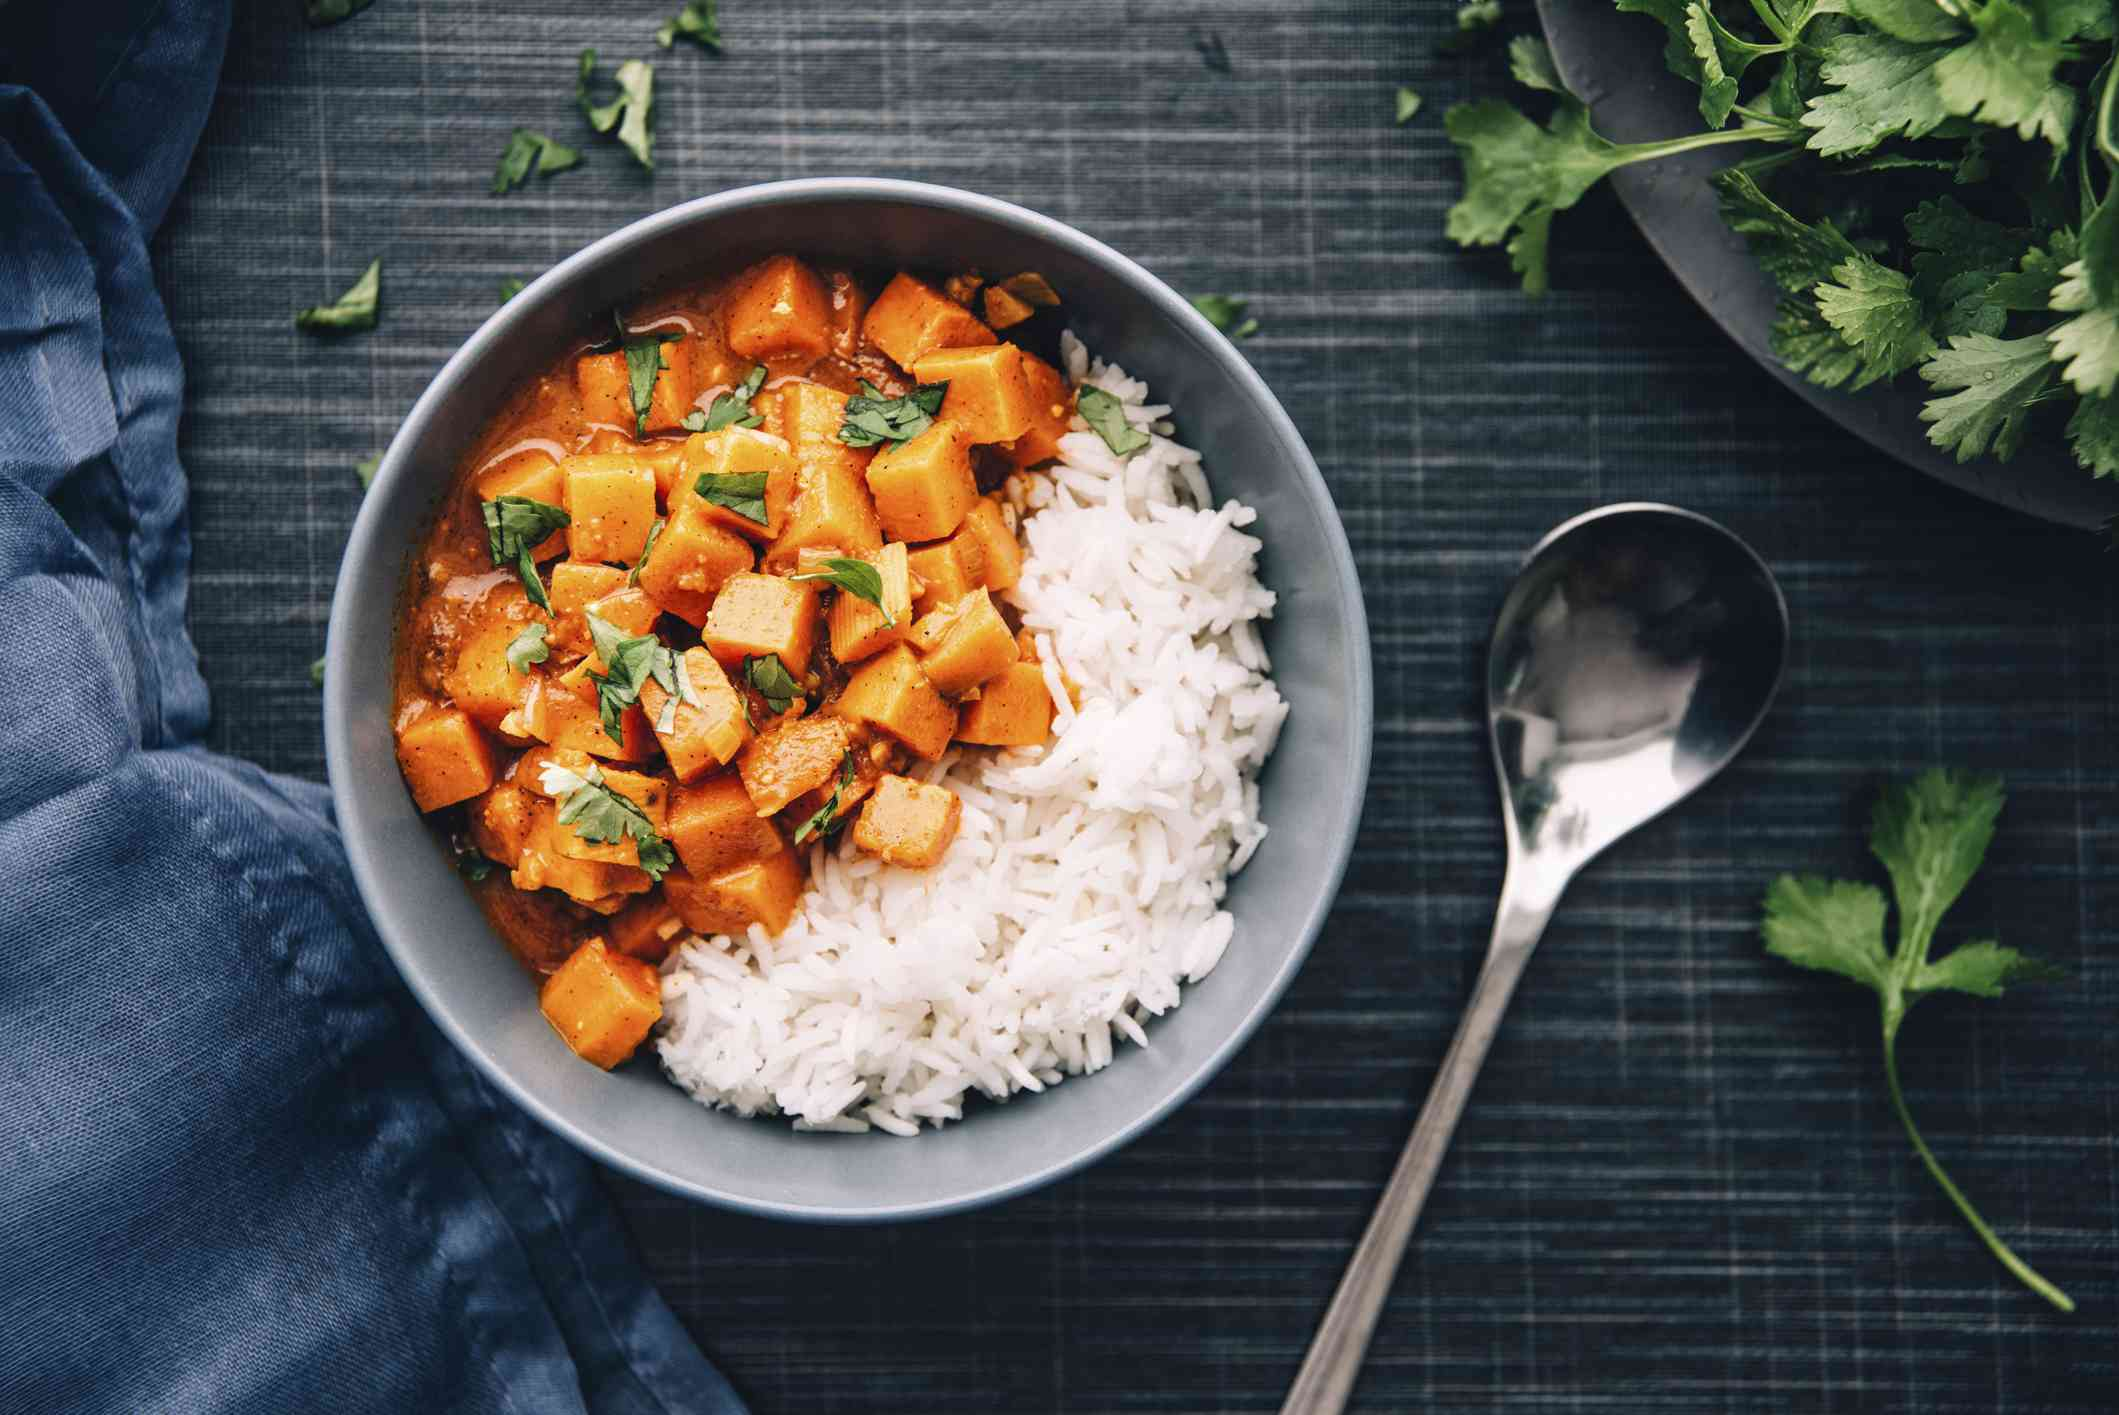 Bowl of sweet potato served with rice